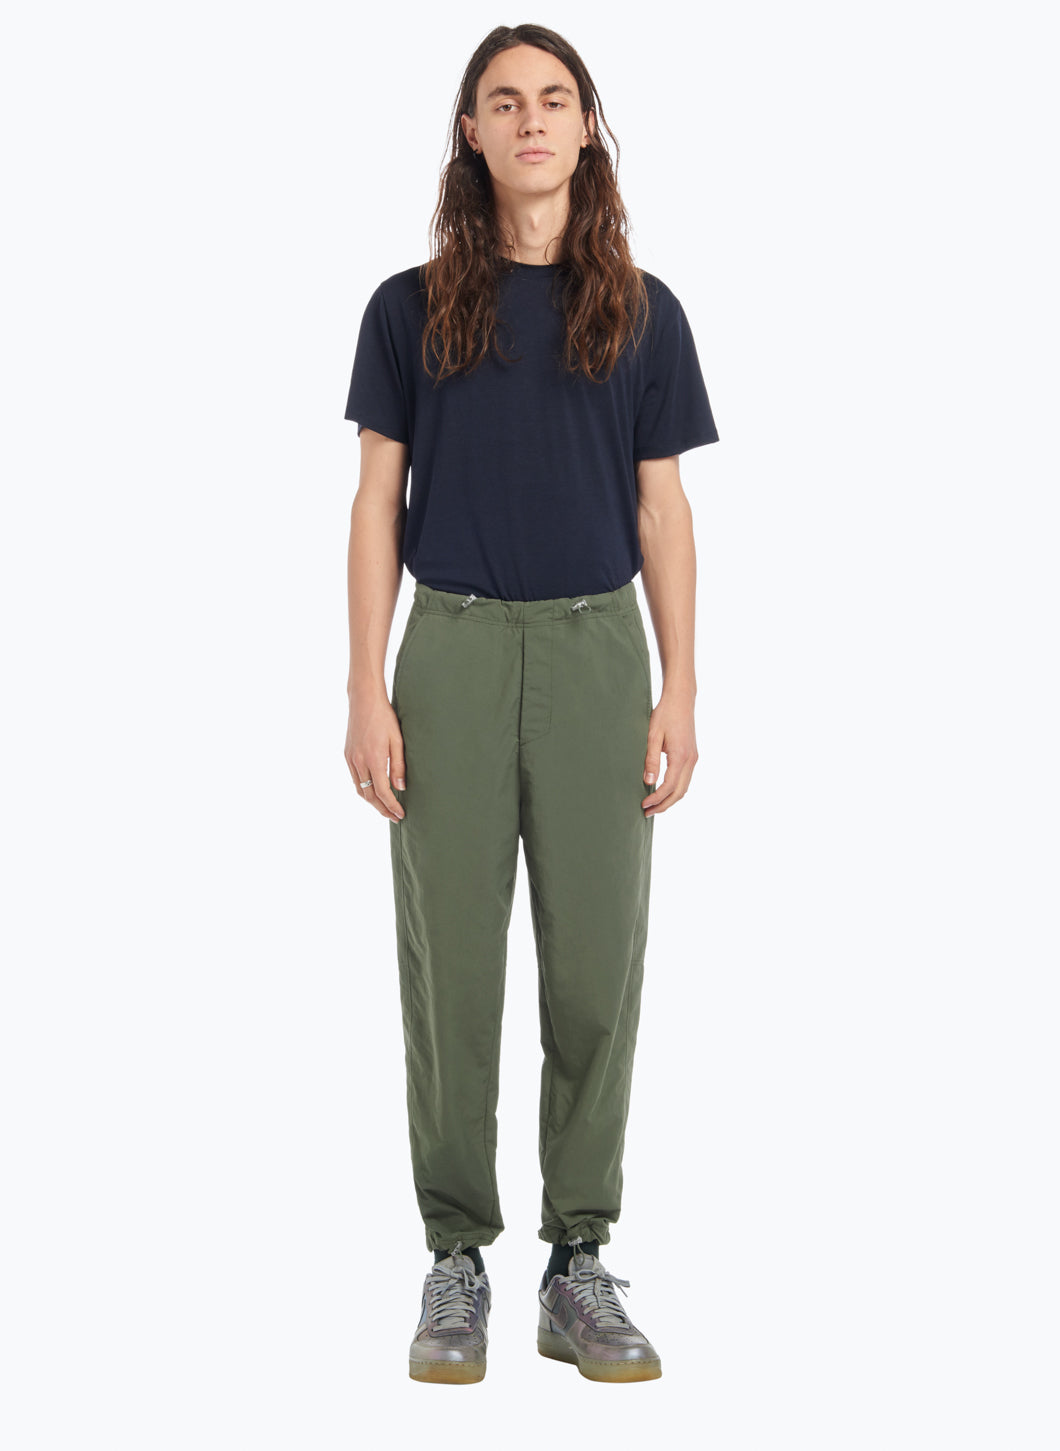 Drawstring Pants in Olive Technical Material